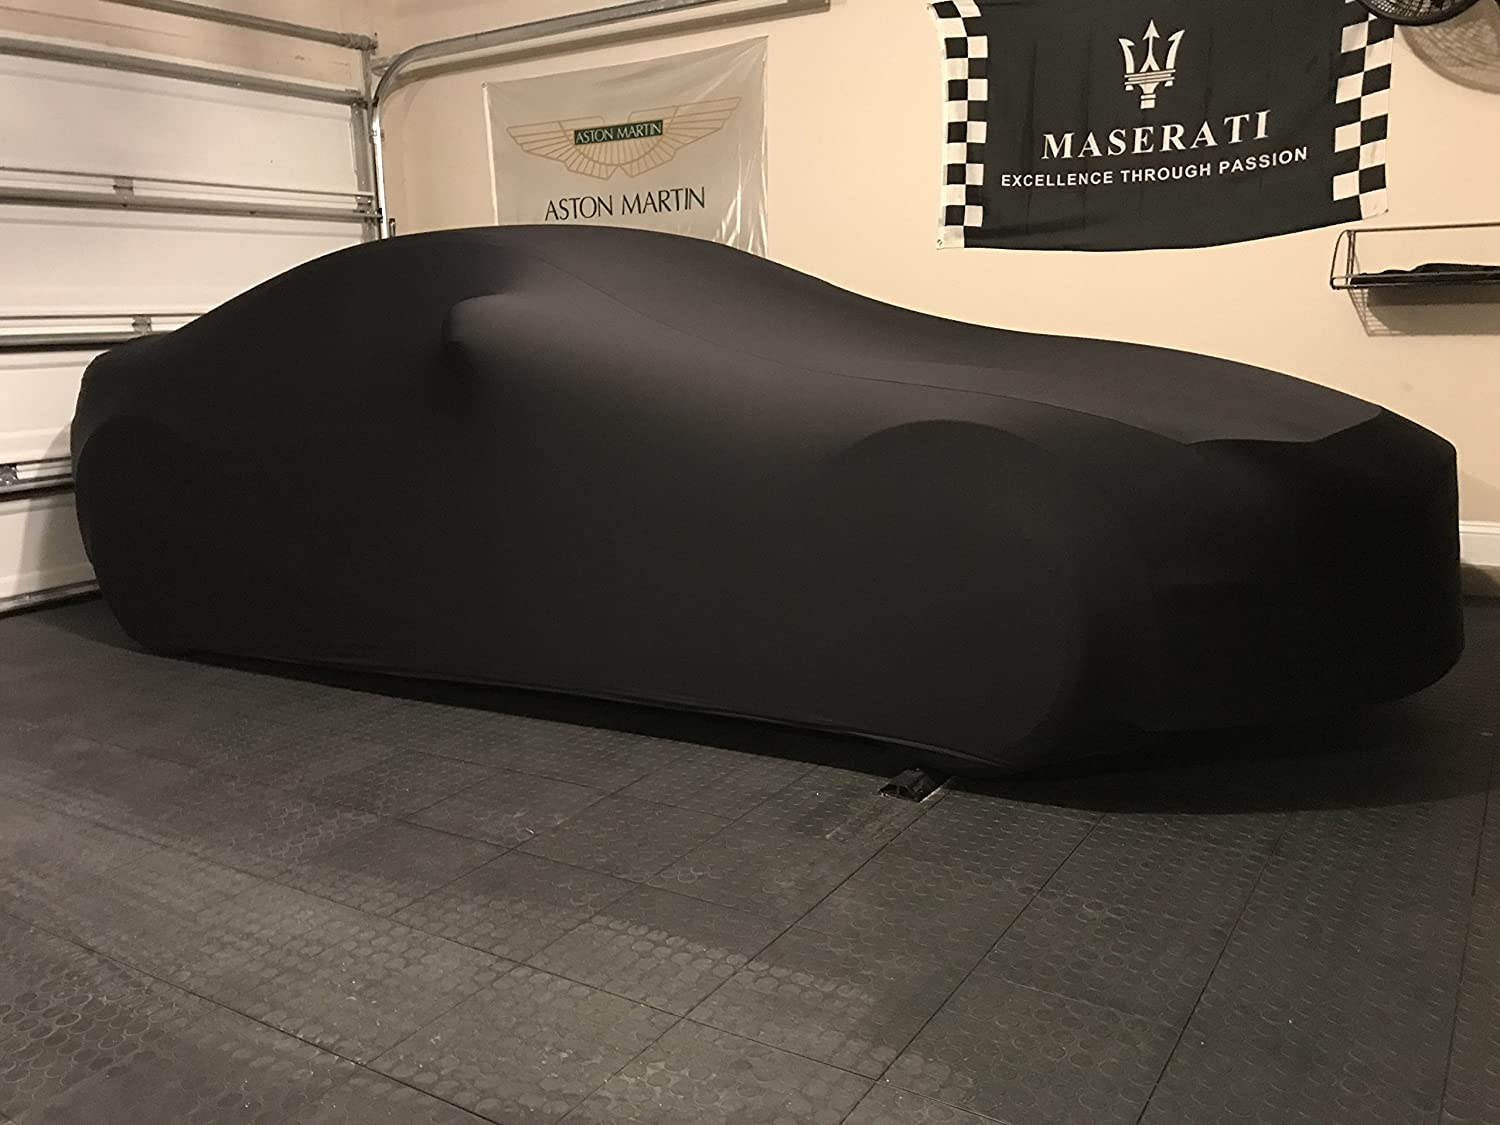 Guaranteed Keep Vehicle Looking Between Use Black Satin Ultra Soft Indoor Material Indoor SUV Car Cover Compatible with Porsche Macan 2014-2019 Includes Storage Bag